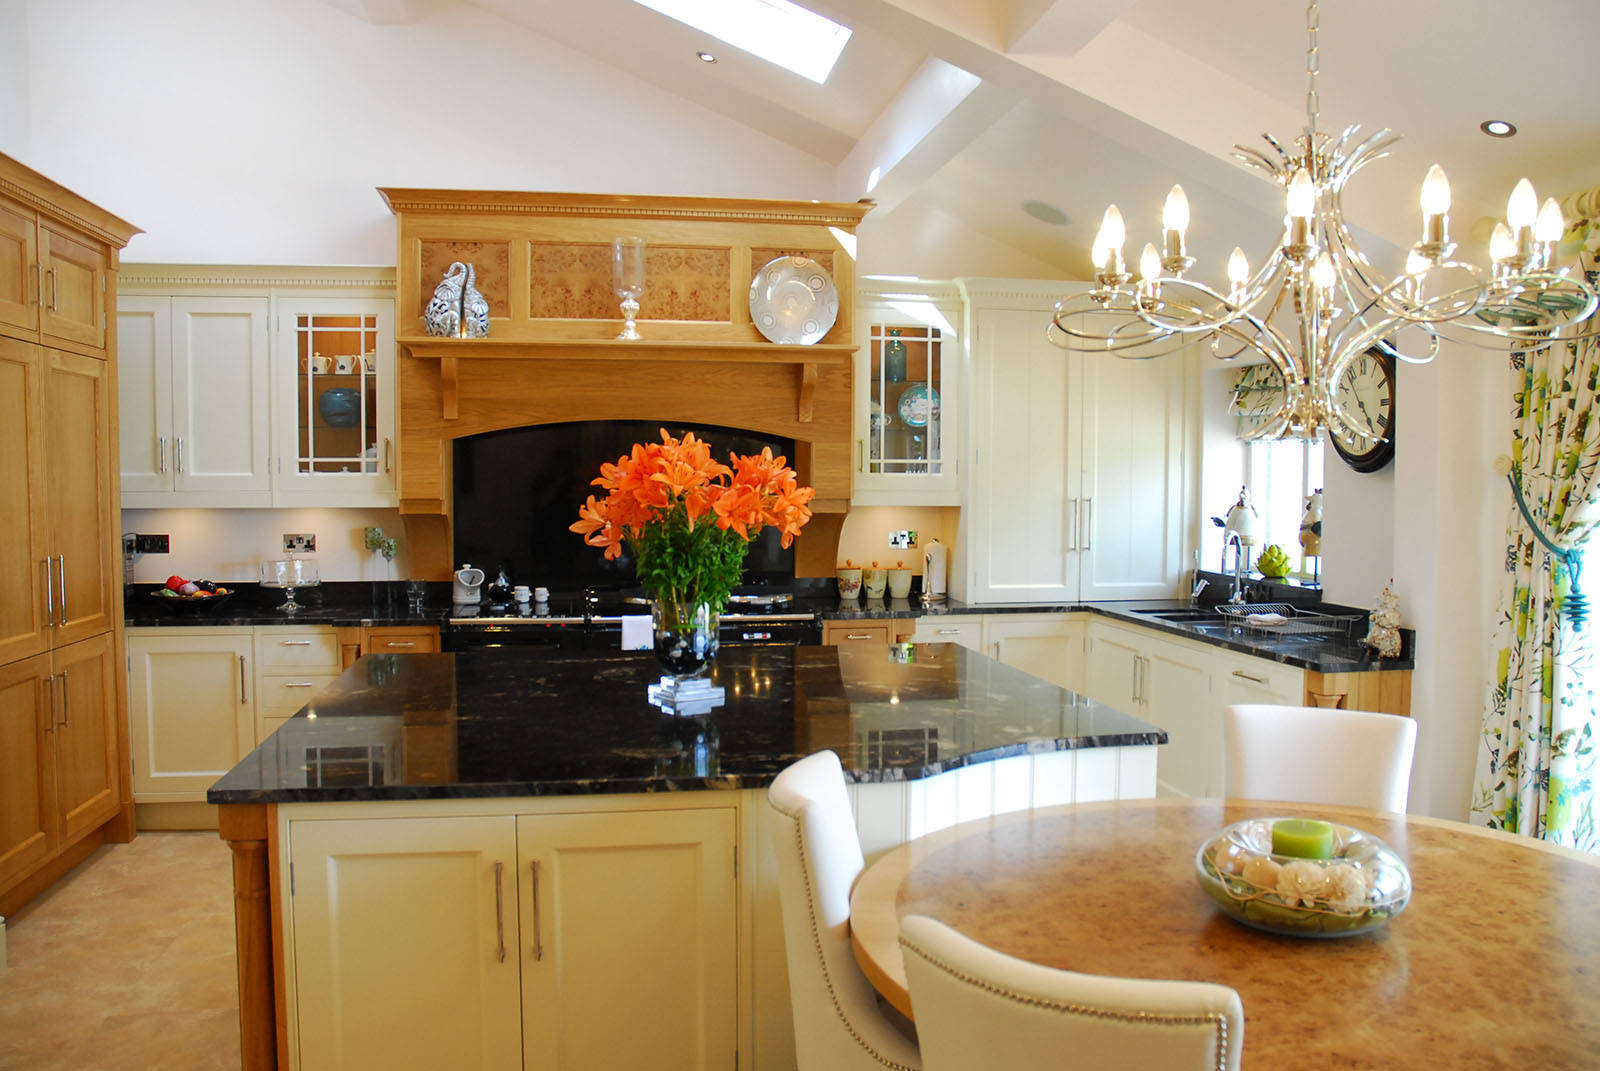 Luxury Bespoke English Classic Kitchens Southport by Acanthus Deisgn